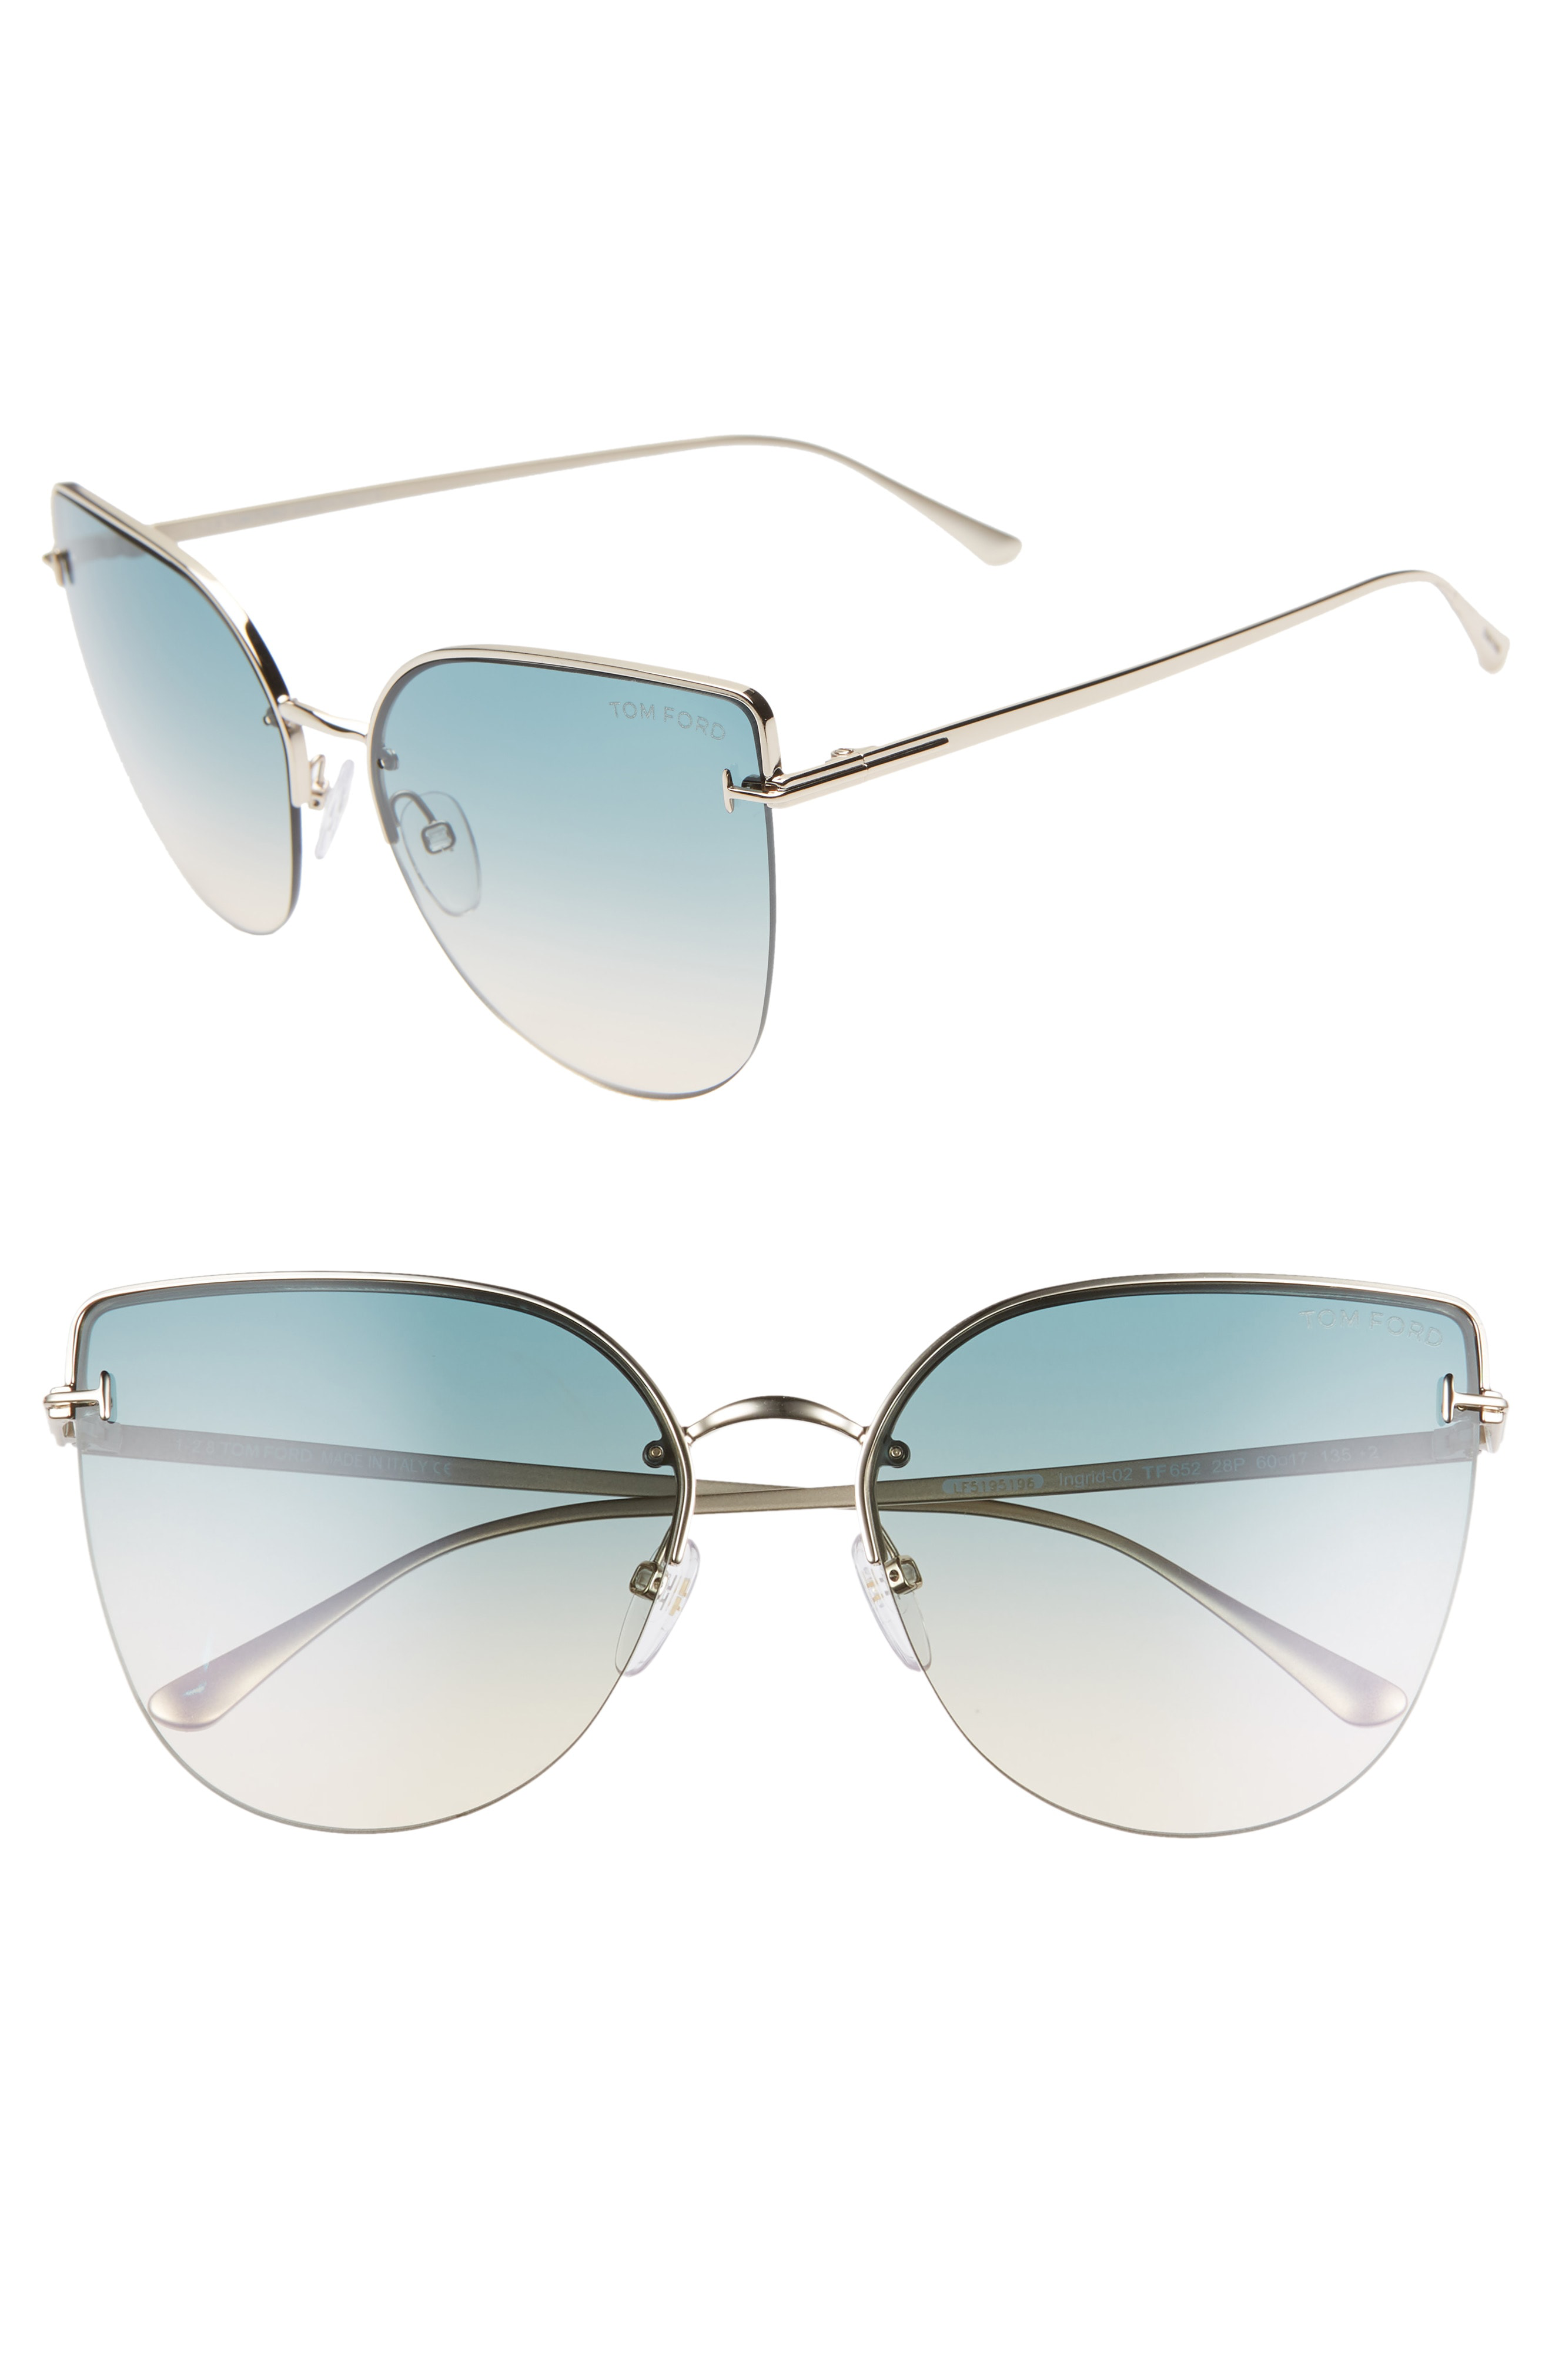 9bf396370a42 Tom Ford Ingrid 60Mm Cat Eye Sunglasses - Rose Gold  Gradient Brown ...